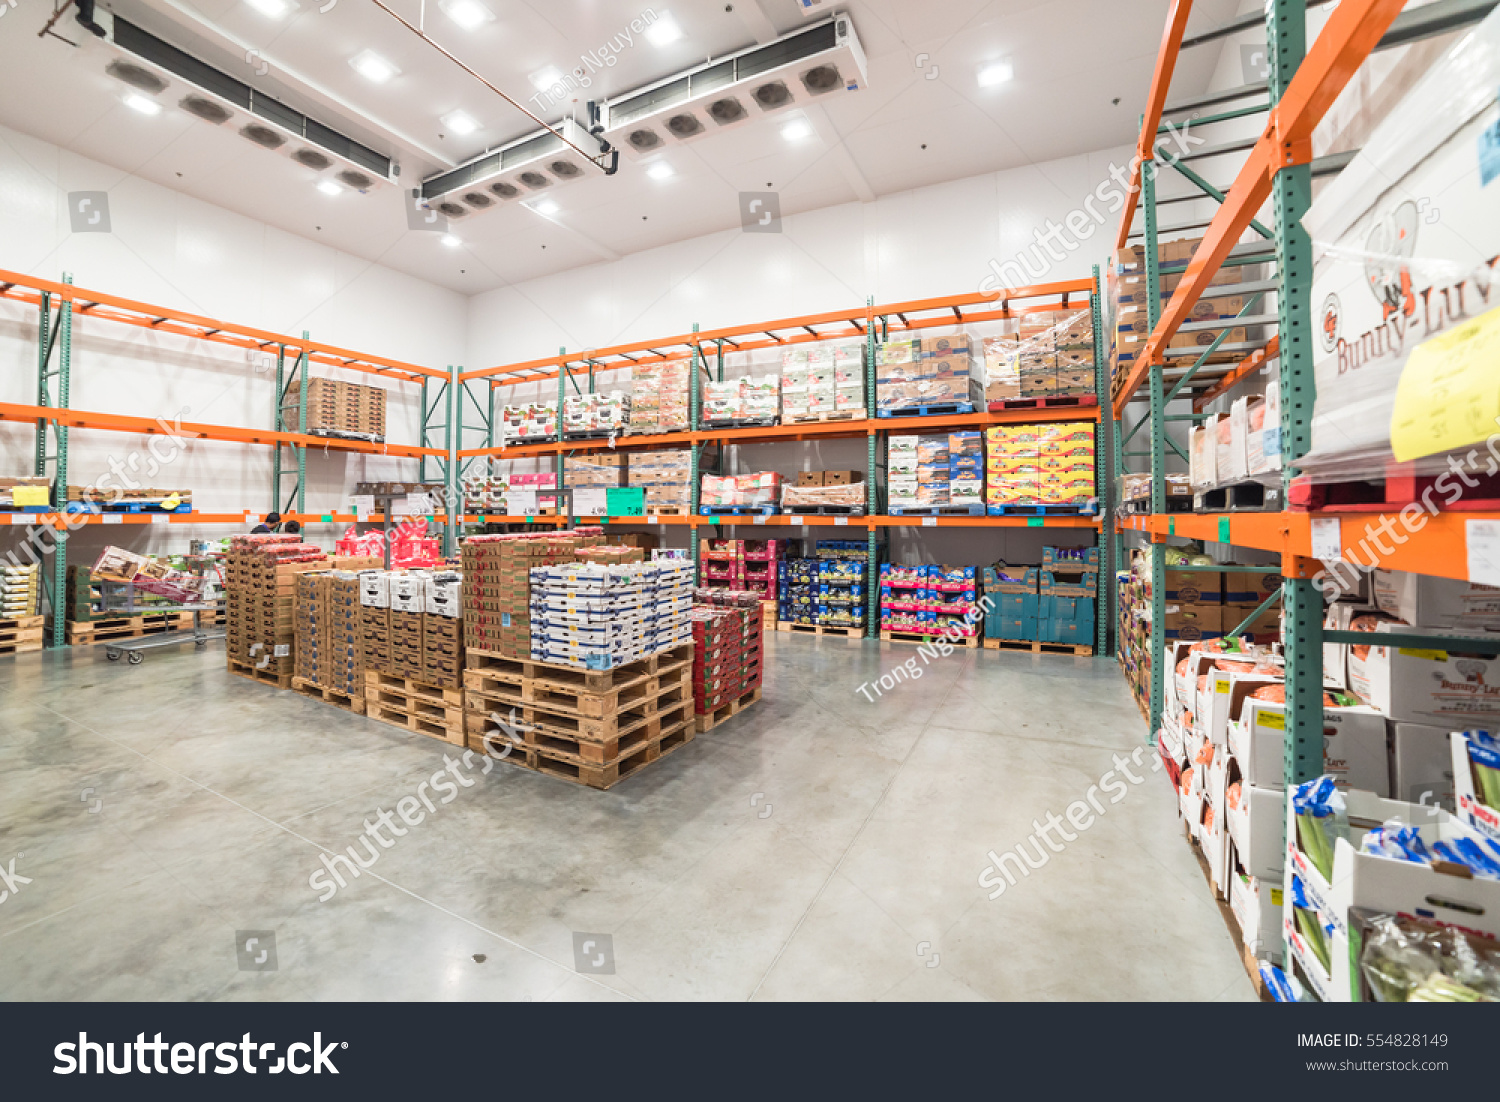 Humble tx us jan 12 2017 fresh stock photo image royalty free humble tx us jan 12 2017fresh produce refrigerated room in thecheapjerseys Gallery